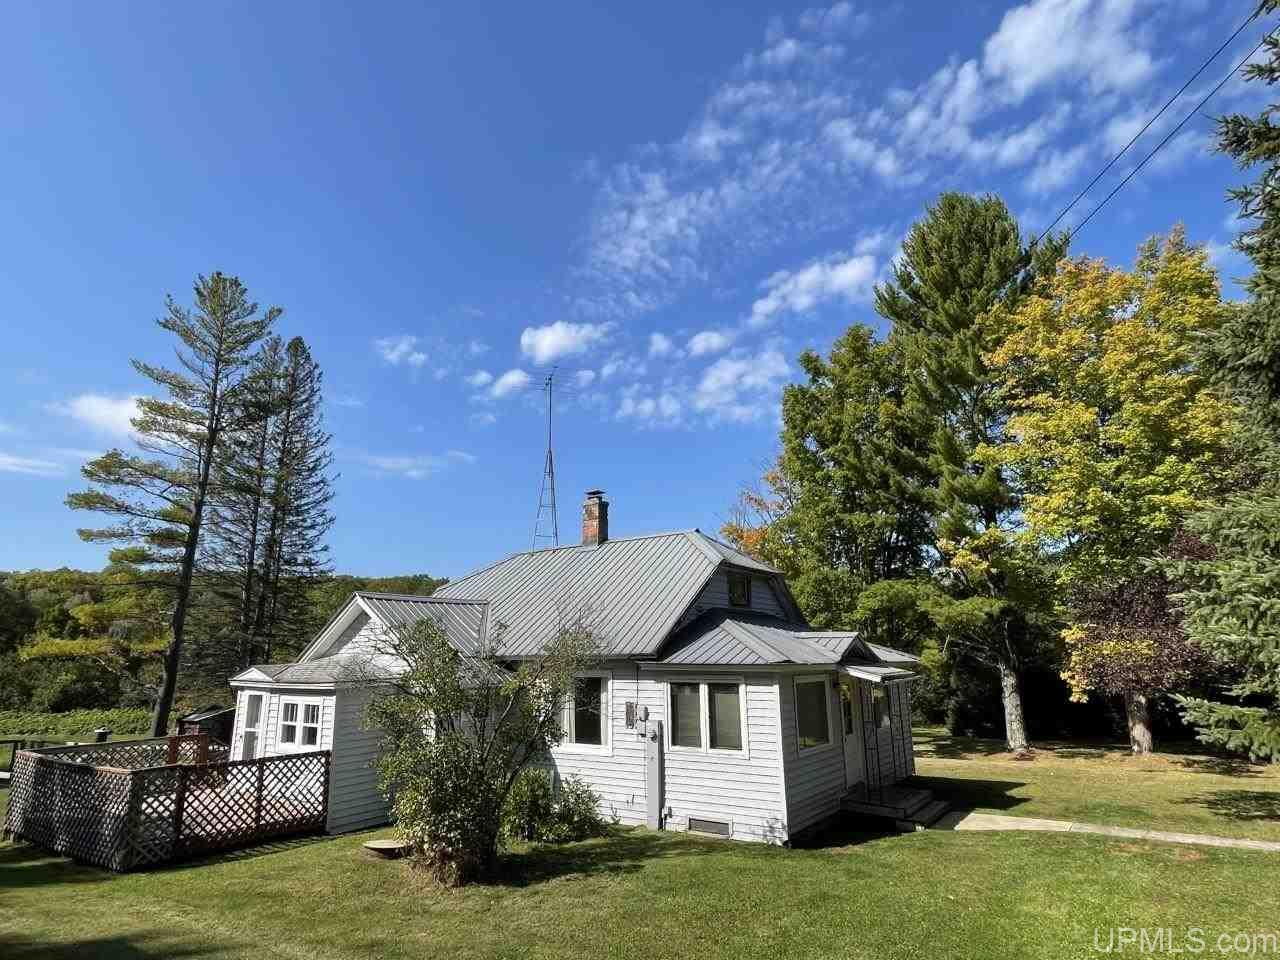 45895 Paradise Rd, Chassell, MI 49916